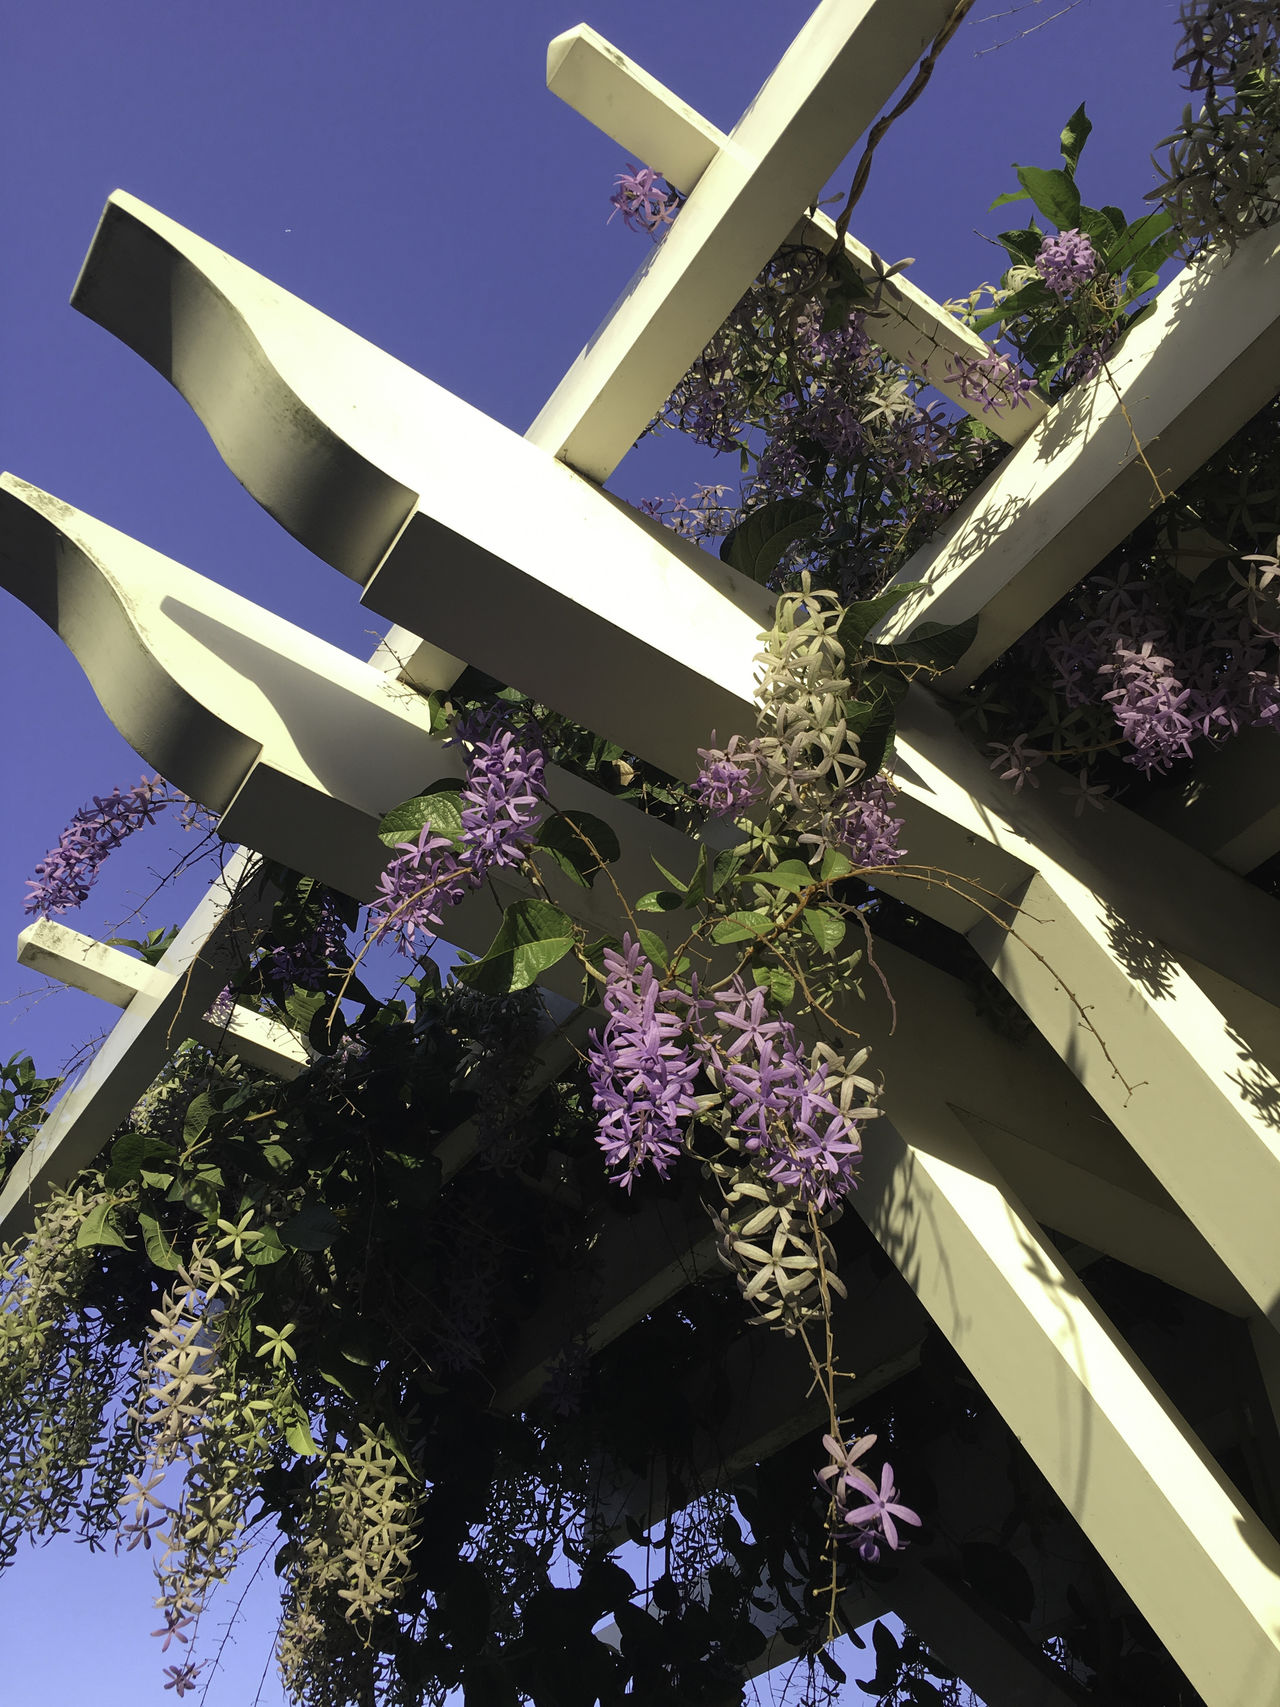 Morning wisteria on trellis Architecture Beauty In Nature Building Exterior Built Structure City Day Flower Fragility Growth Low Angle View Morning Nature No People Outdoors Purple Sky Trellis Wisteria Flower